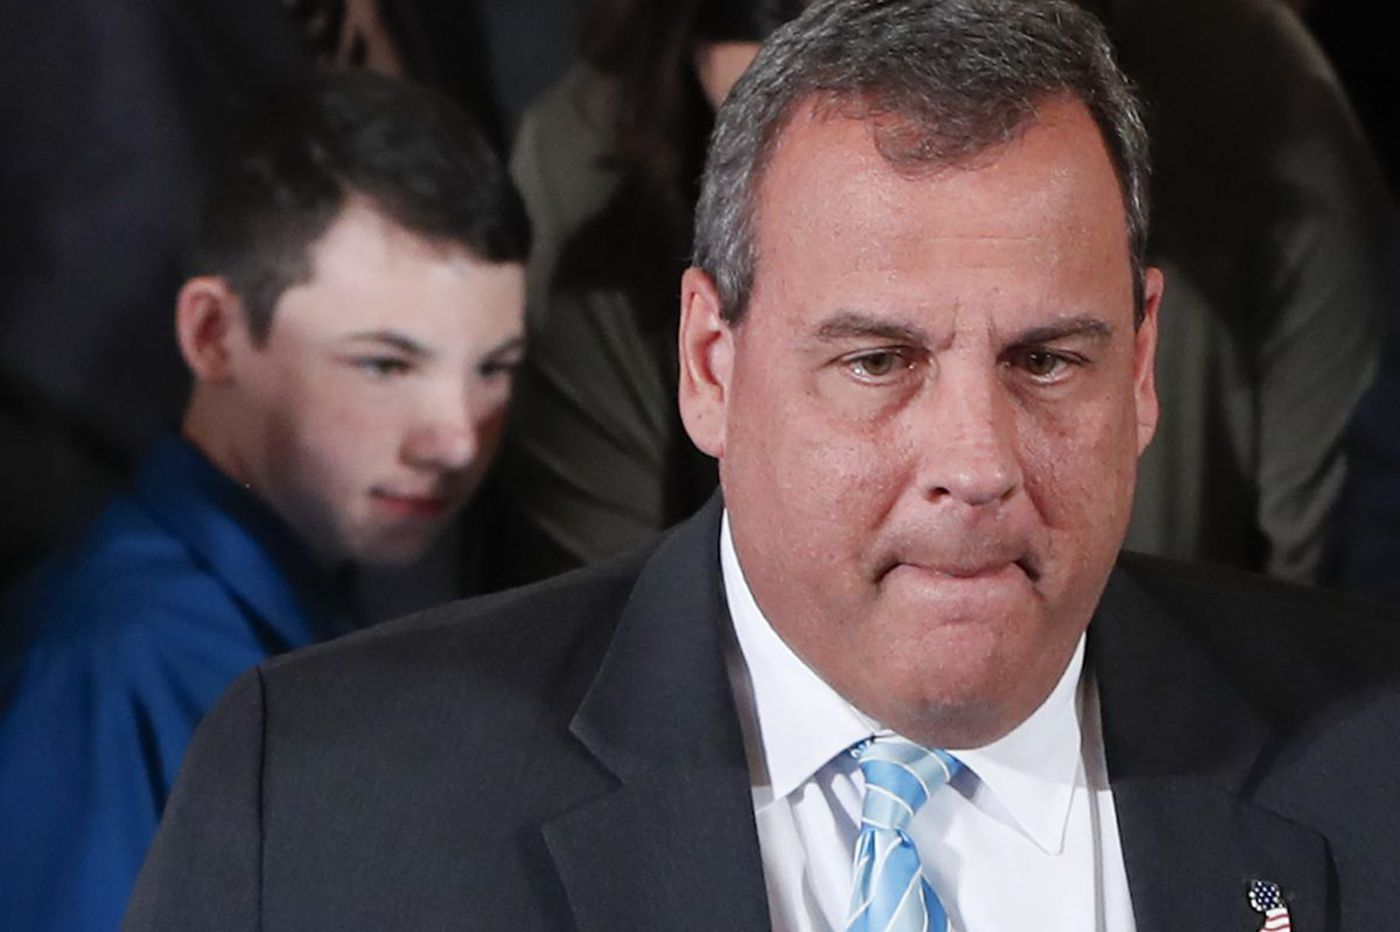 Philly, national experts excoriate Christie's cannabis comments as 'misguided' | Opinion